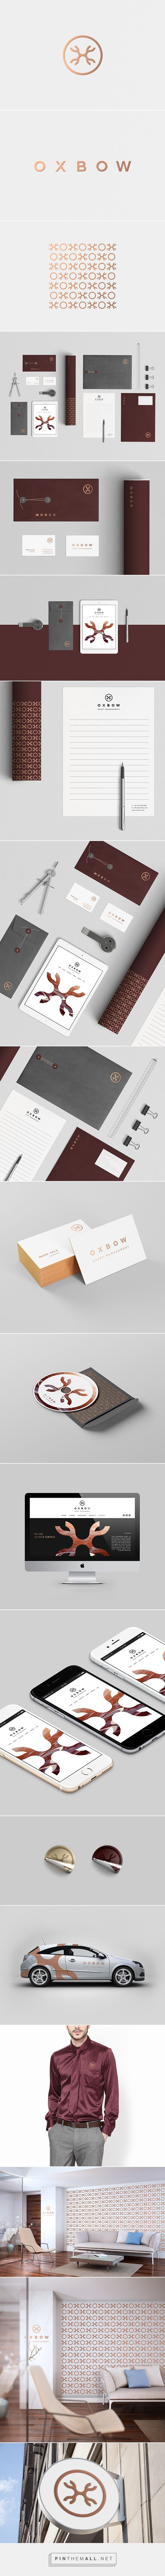 Oxbow Asset Management on Behance - - - - - - - - - - - - - -... - a grouped…